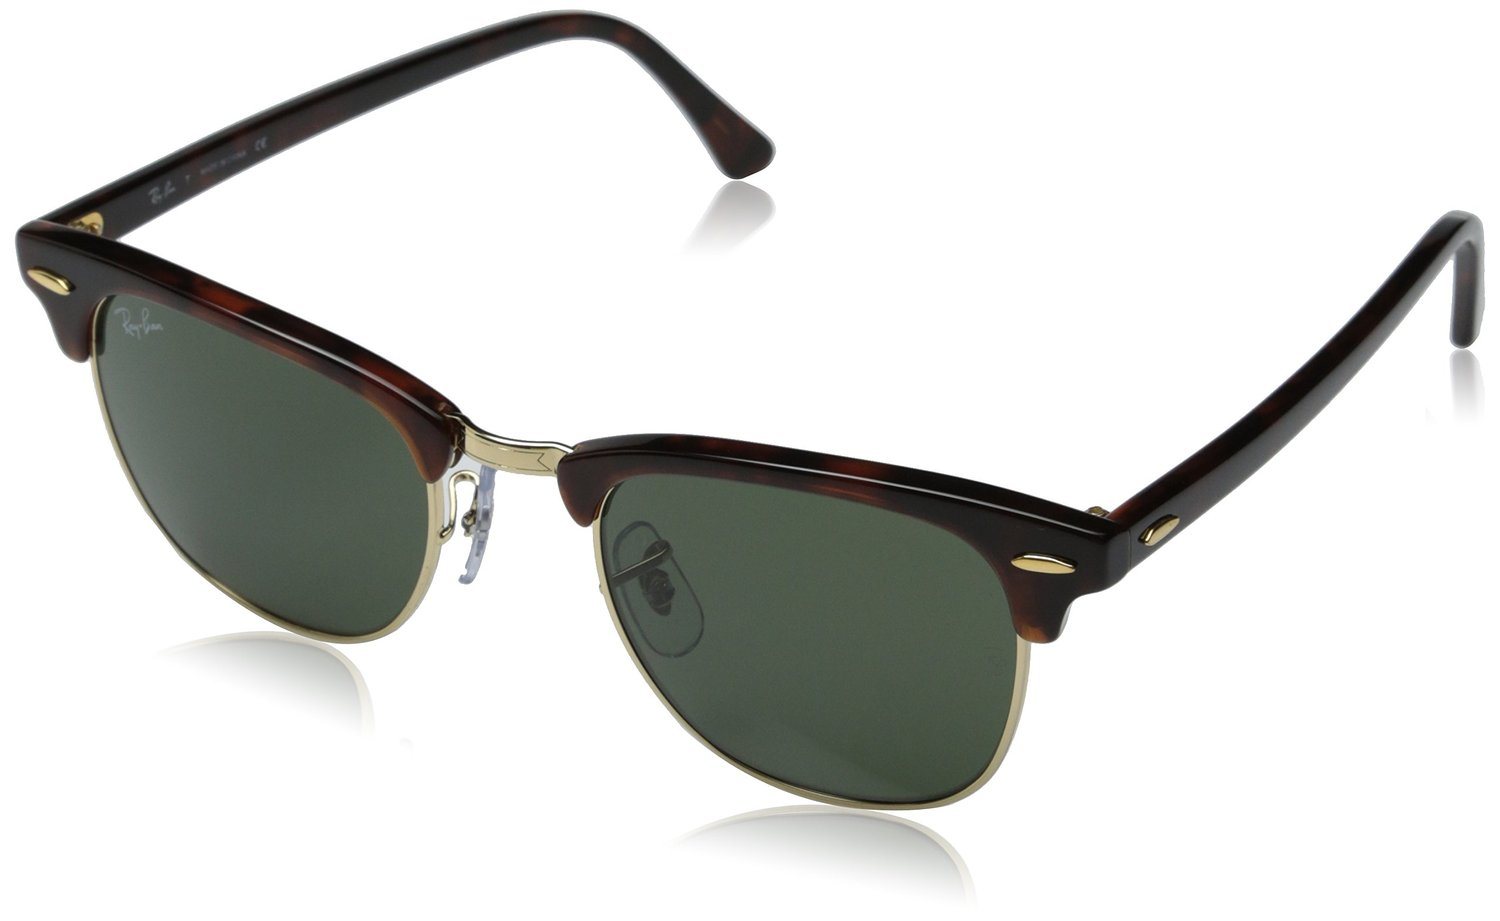 Amazon.com: Ray-Ban RB3016 Classic Clubmaster Sunglasses, Non-Polarized, Tortoise/Arista Frame/Crystal Green Lens, 51 mm: Ray-Ban: Clothing